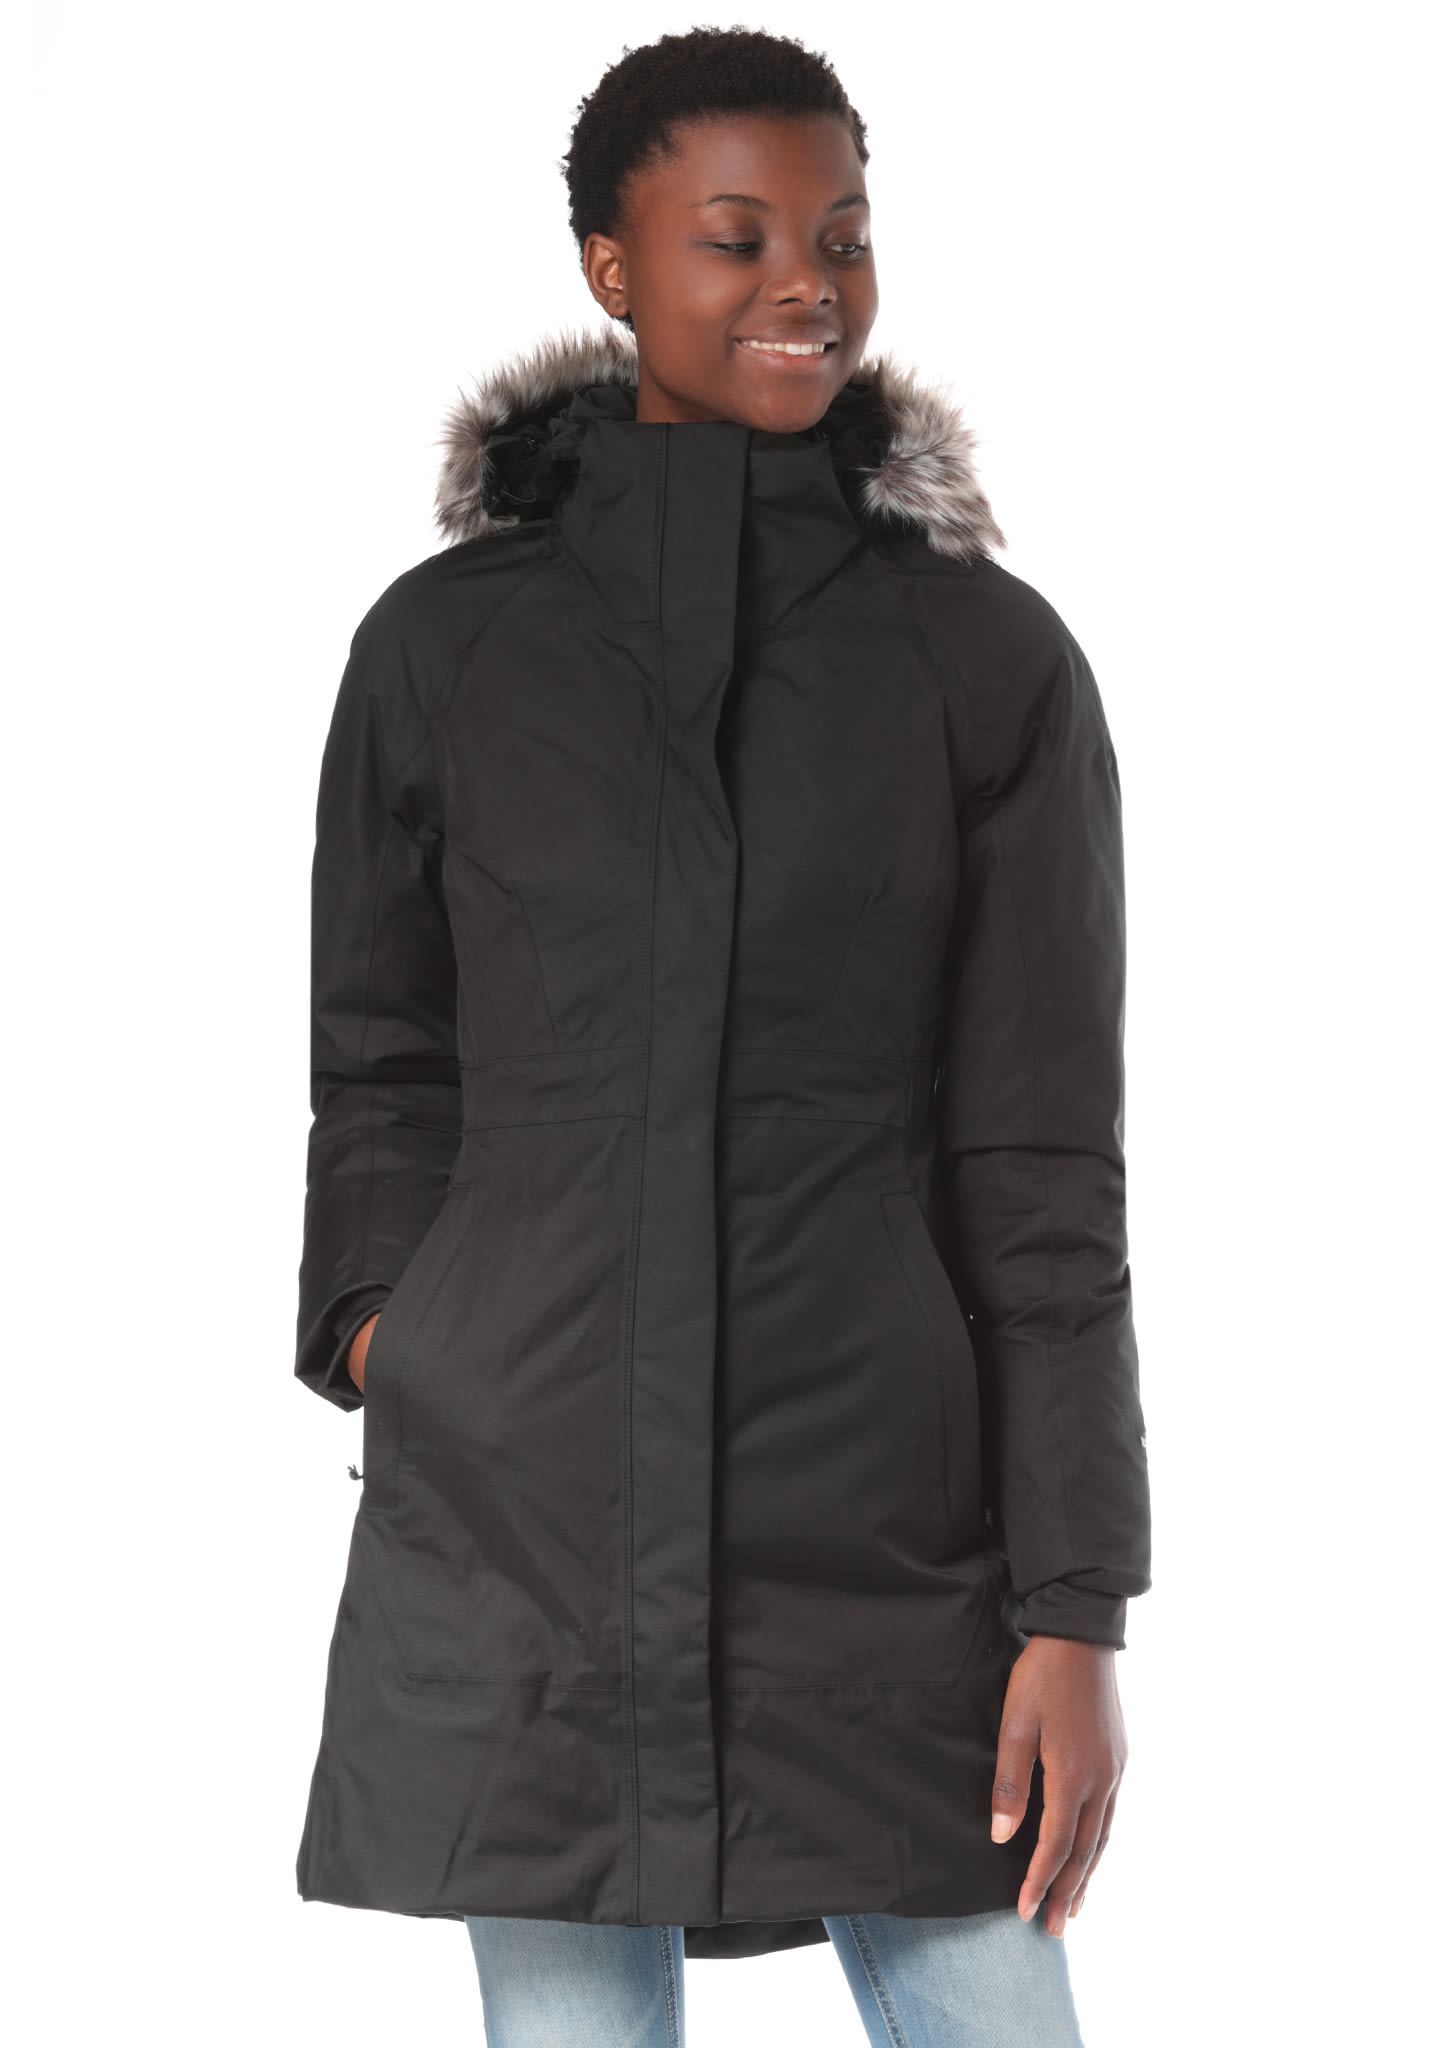 North The Planet Noir Manteau Arctic Femme Parka Pour Ii Face pU4UZO